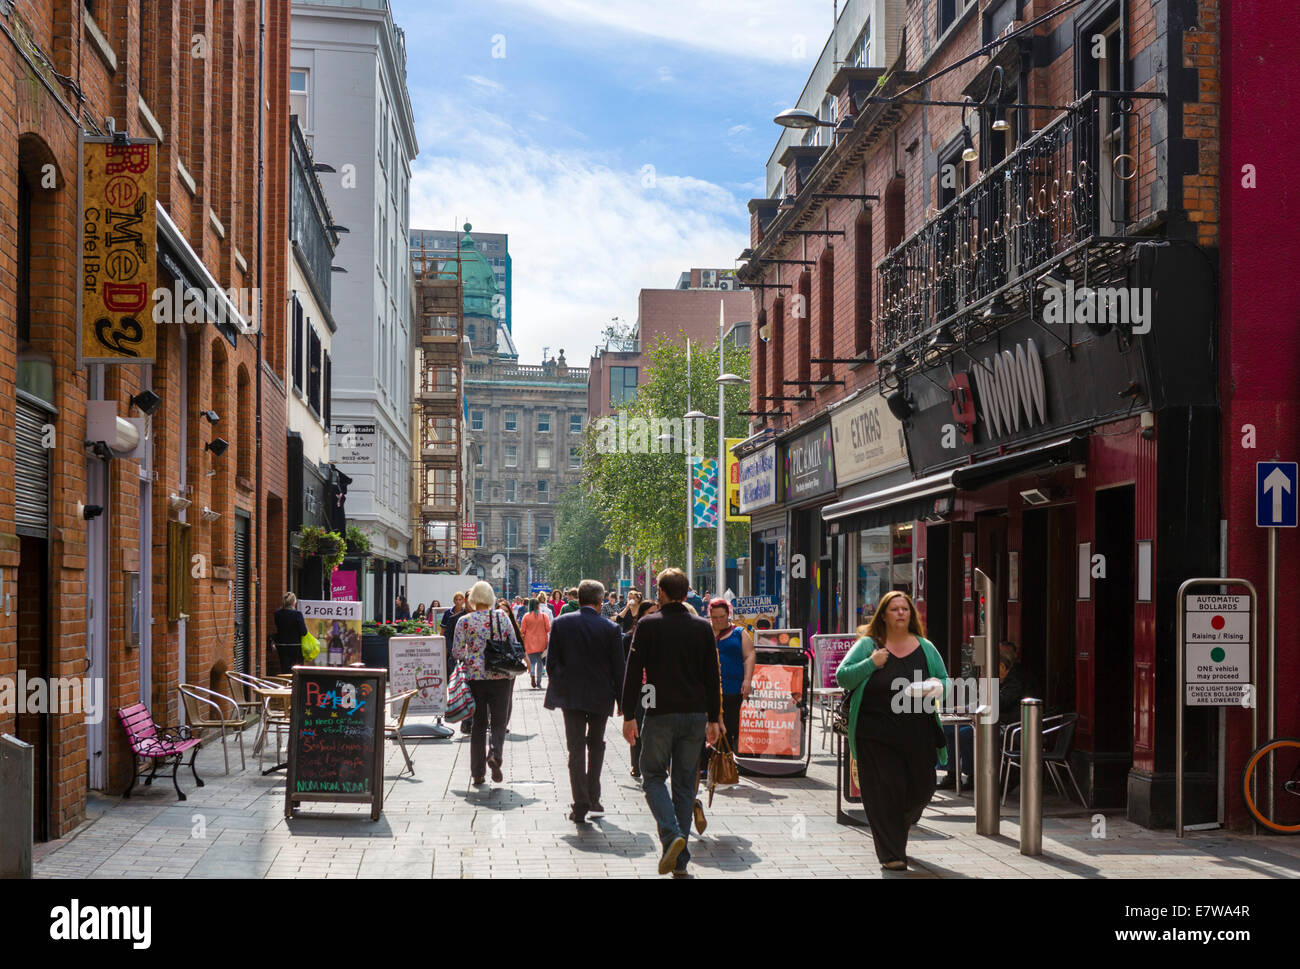 Shops and cafes in the city centre, Fountain Street, Belfast, Northern Ireland, UK - Stock Image